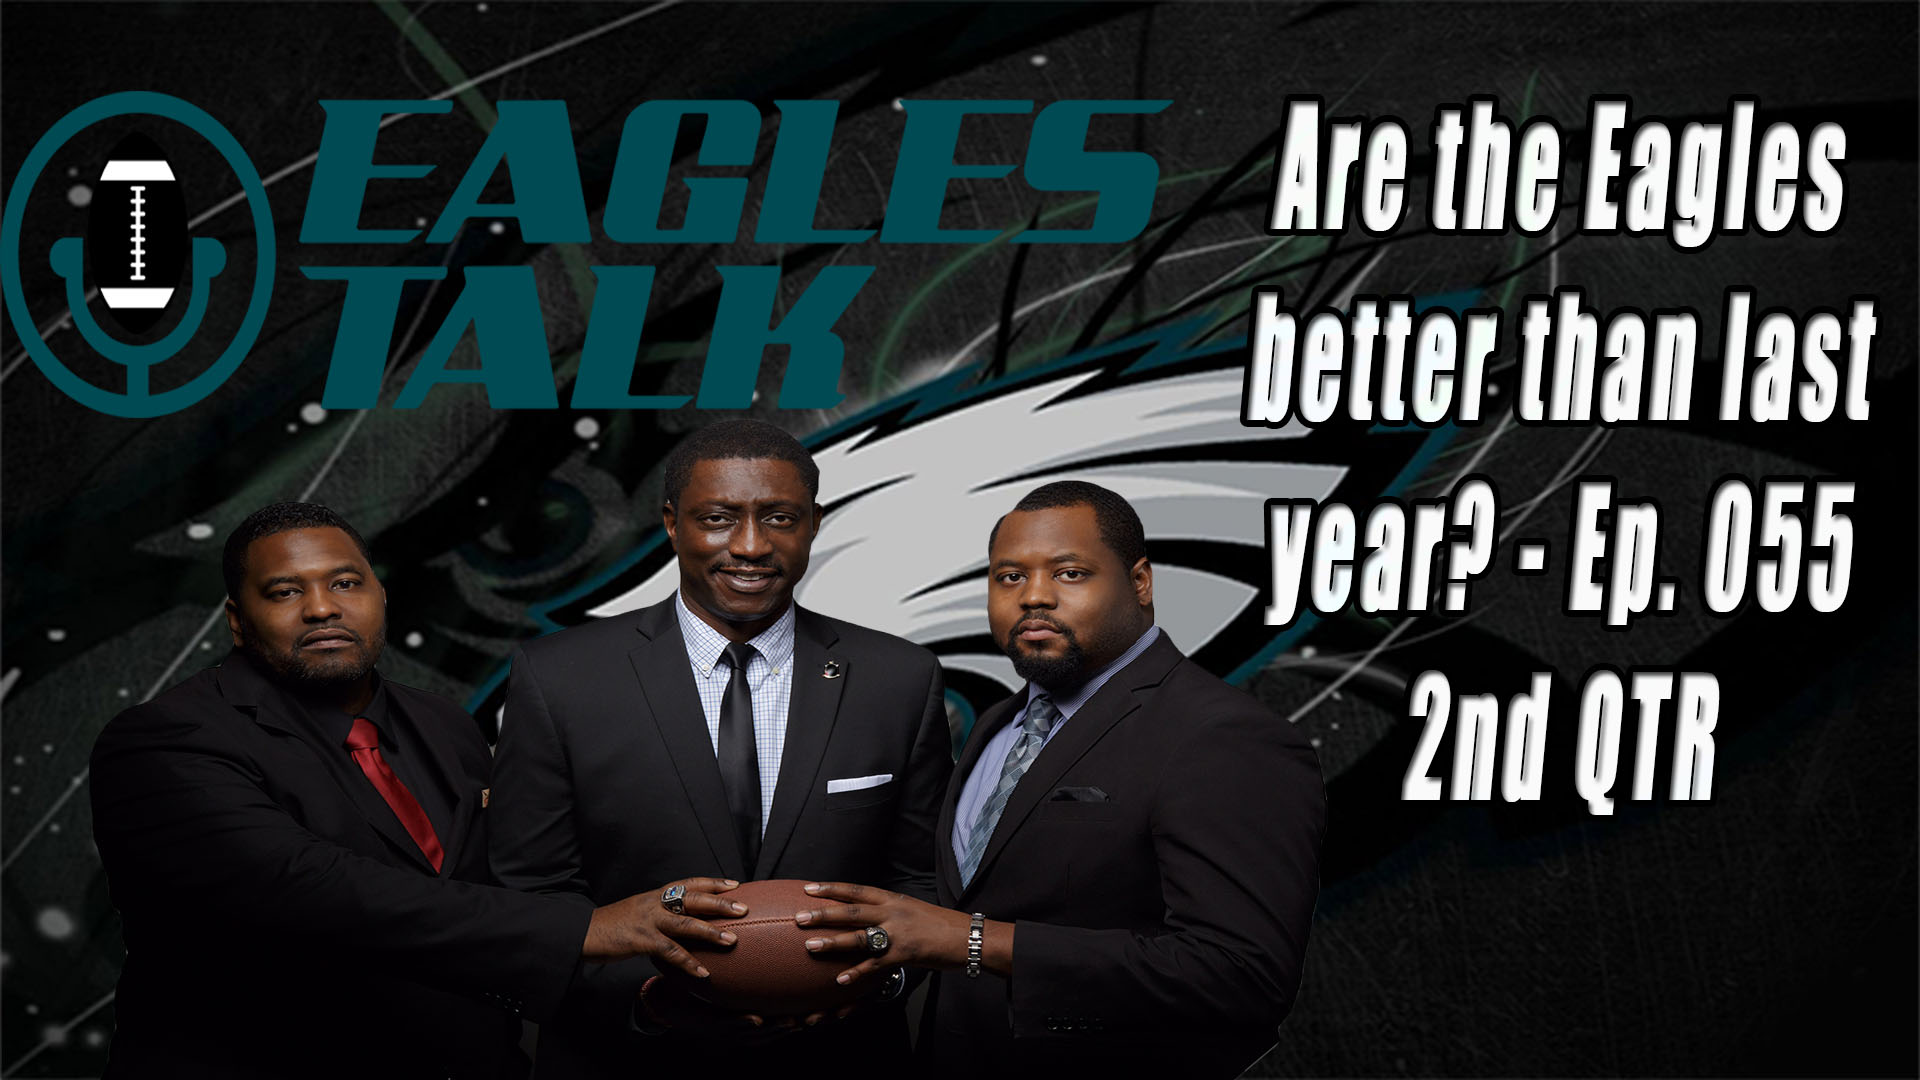 Eagles Talk Ep056: Are the Eagles better than last year? (2nd QTR)